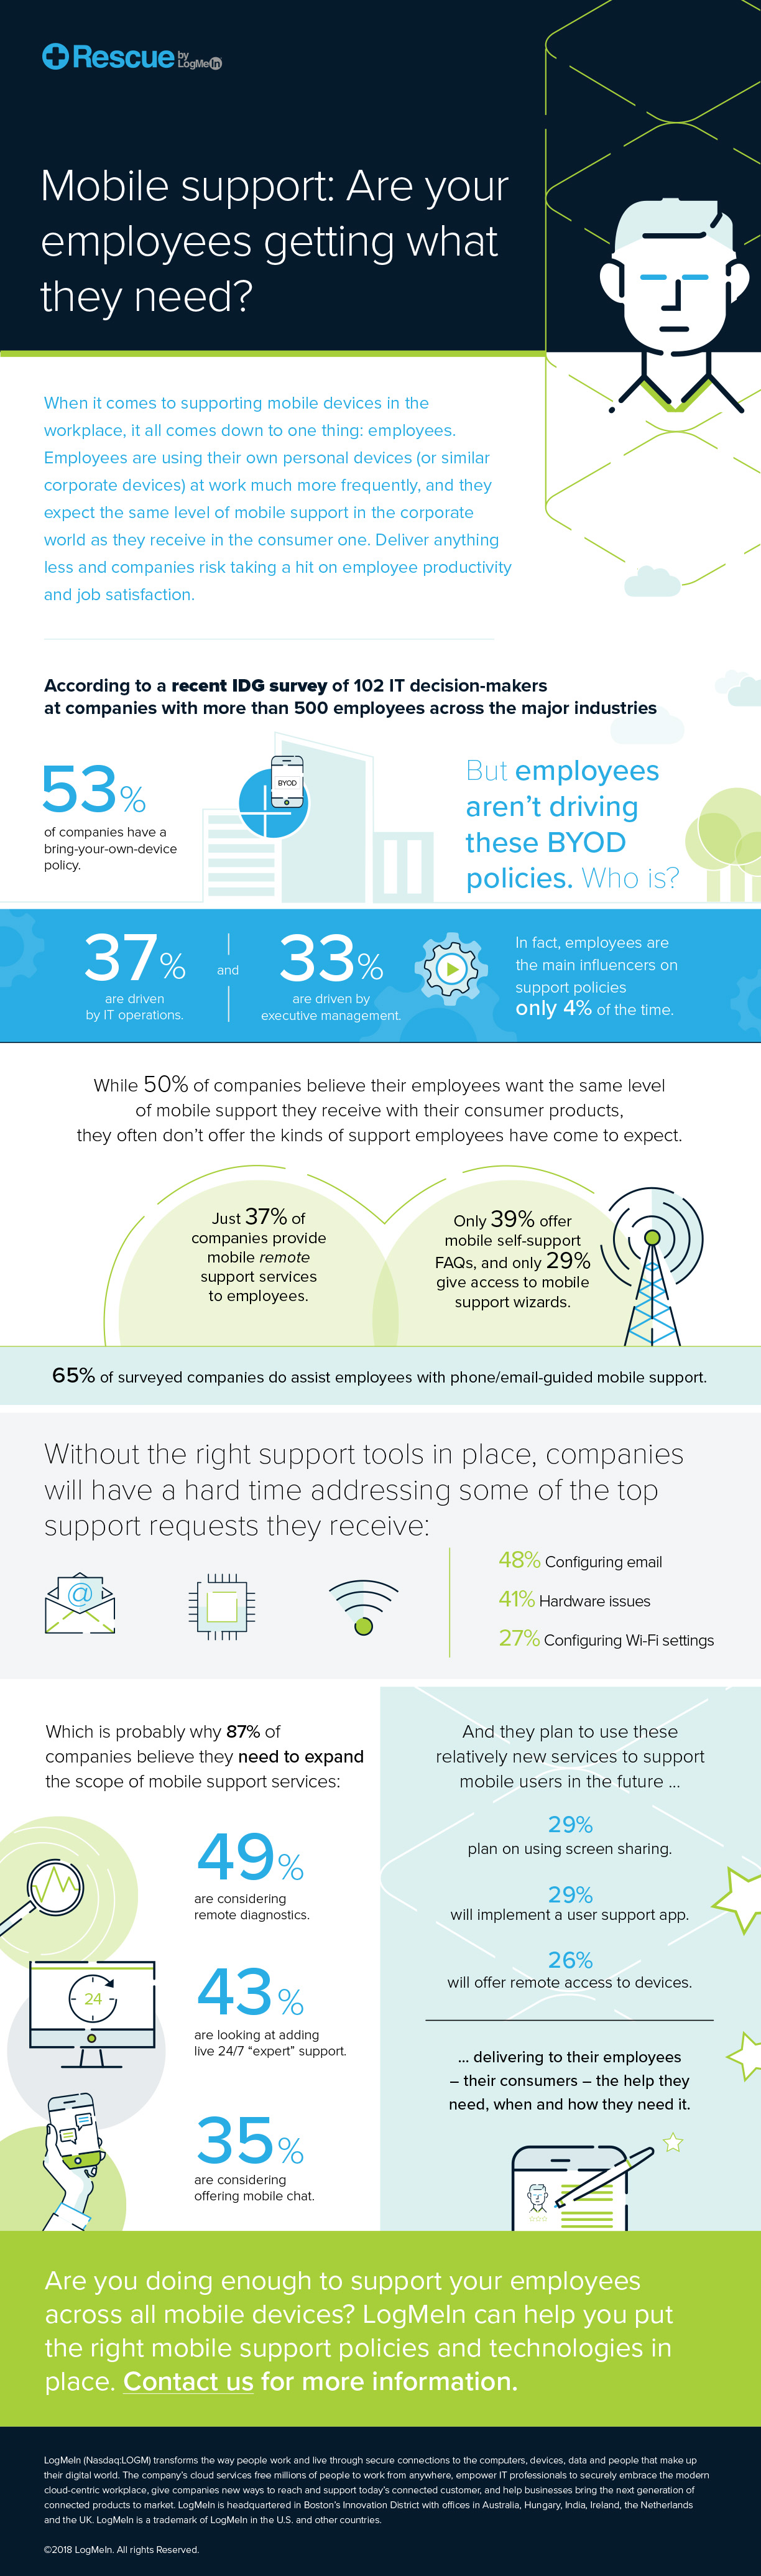 Infographic: Mobile support - Are your employees getting what they need